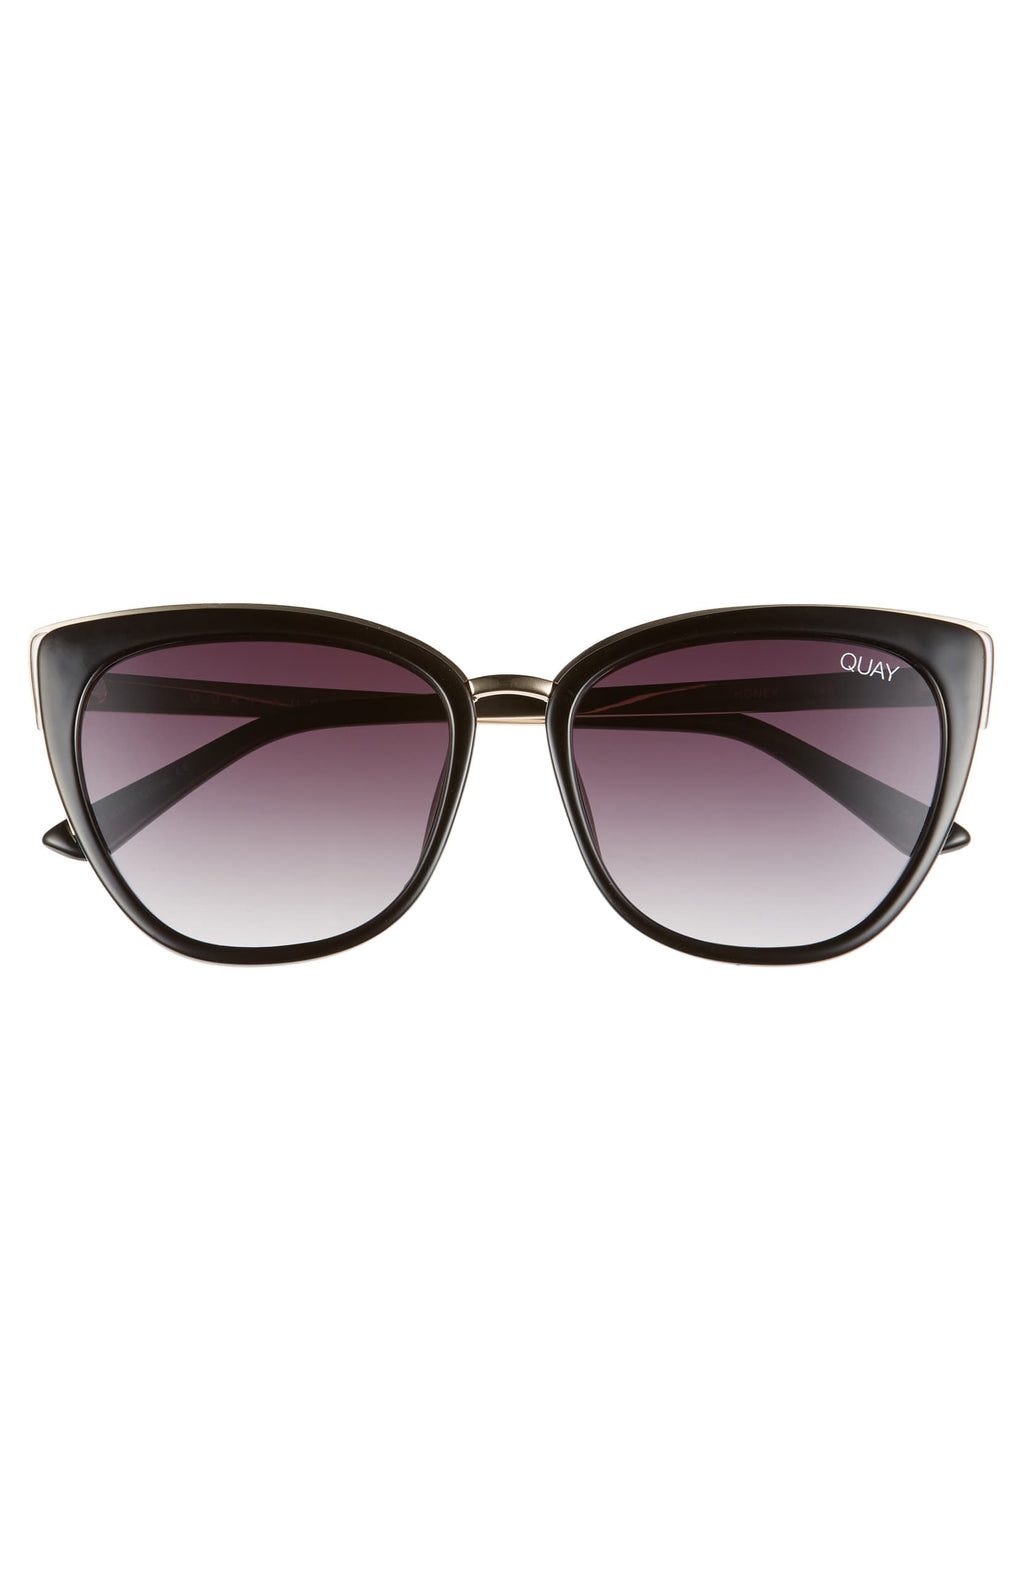 Honey Sunnies Black/Smoke